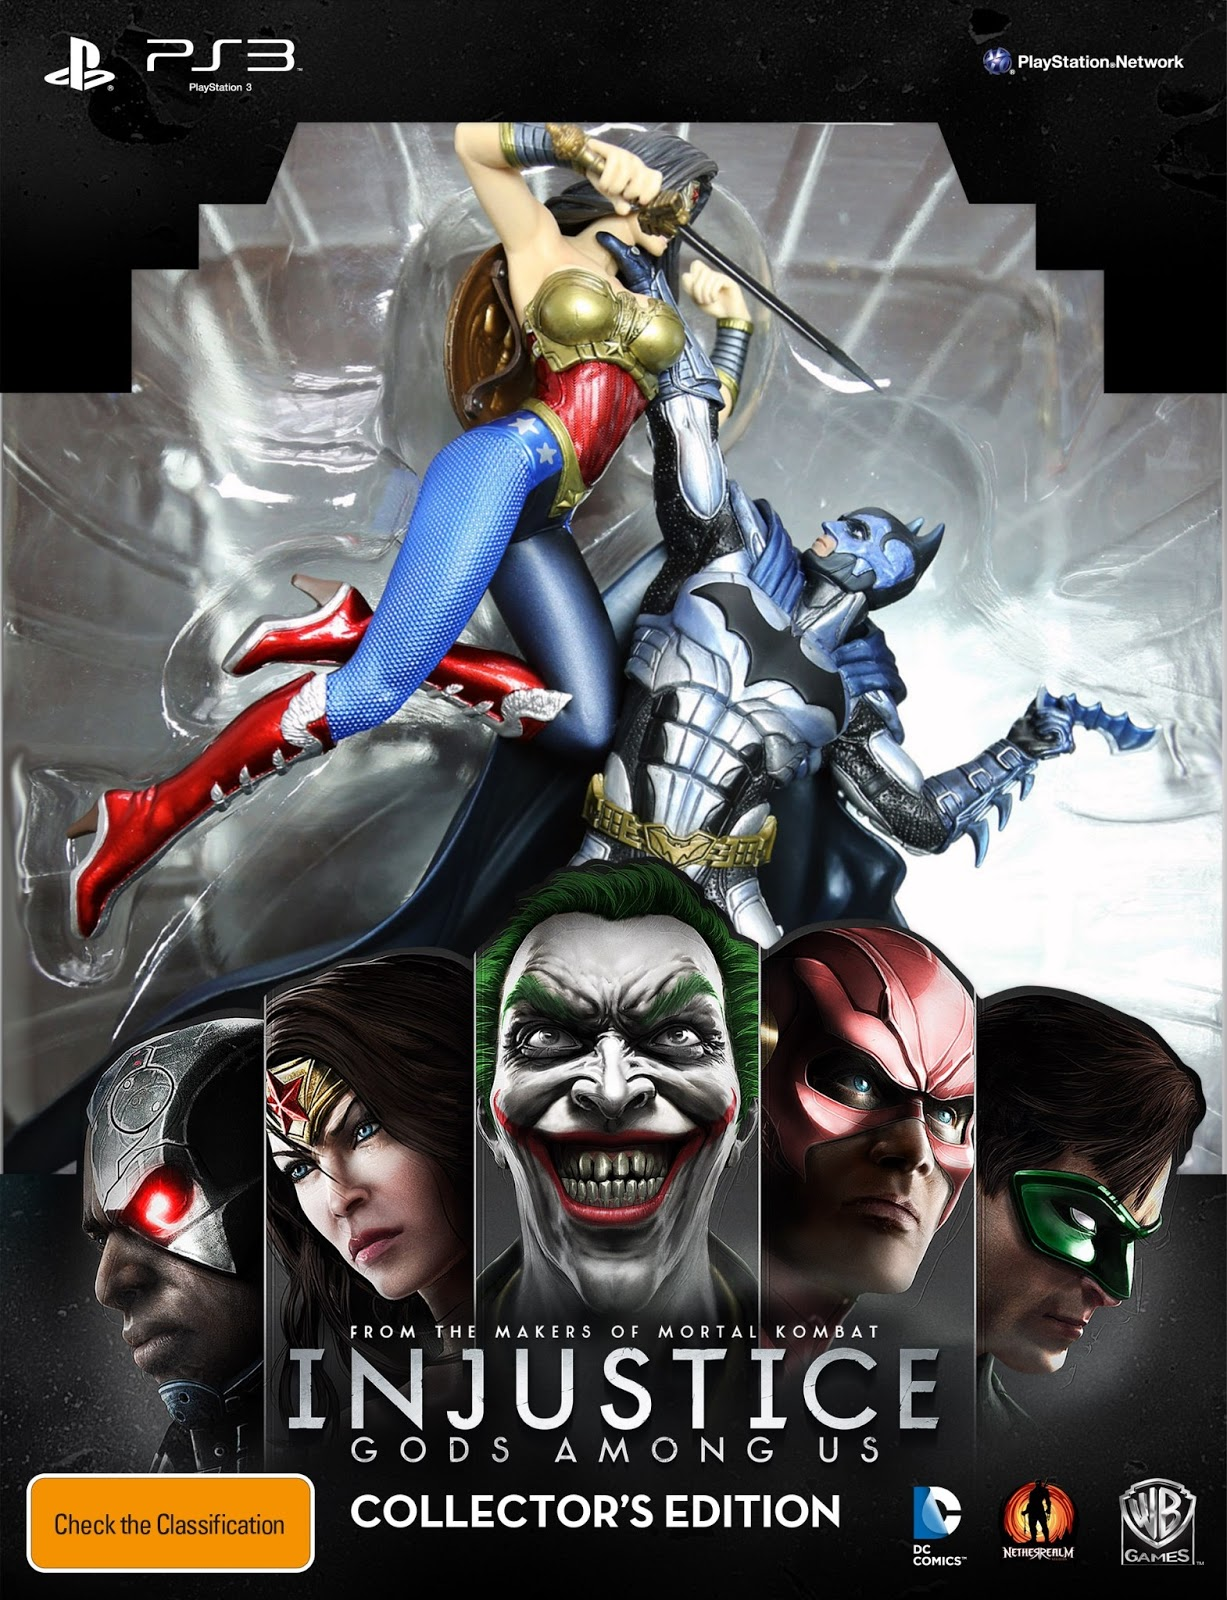 Injustice: Gods Among Us - PlayStation 3 - www.GameInformer.com